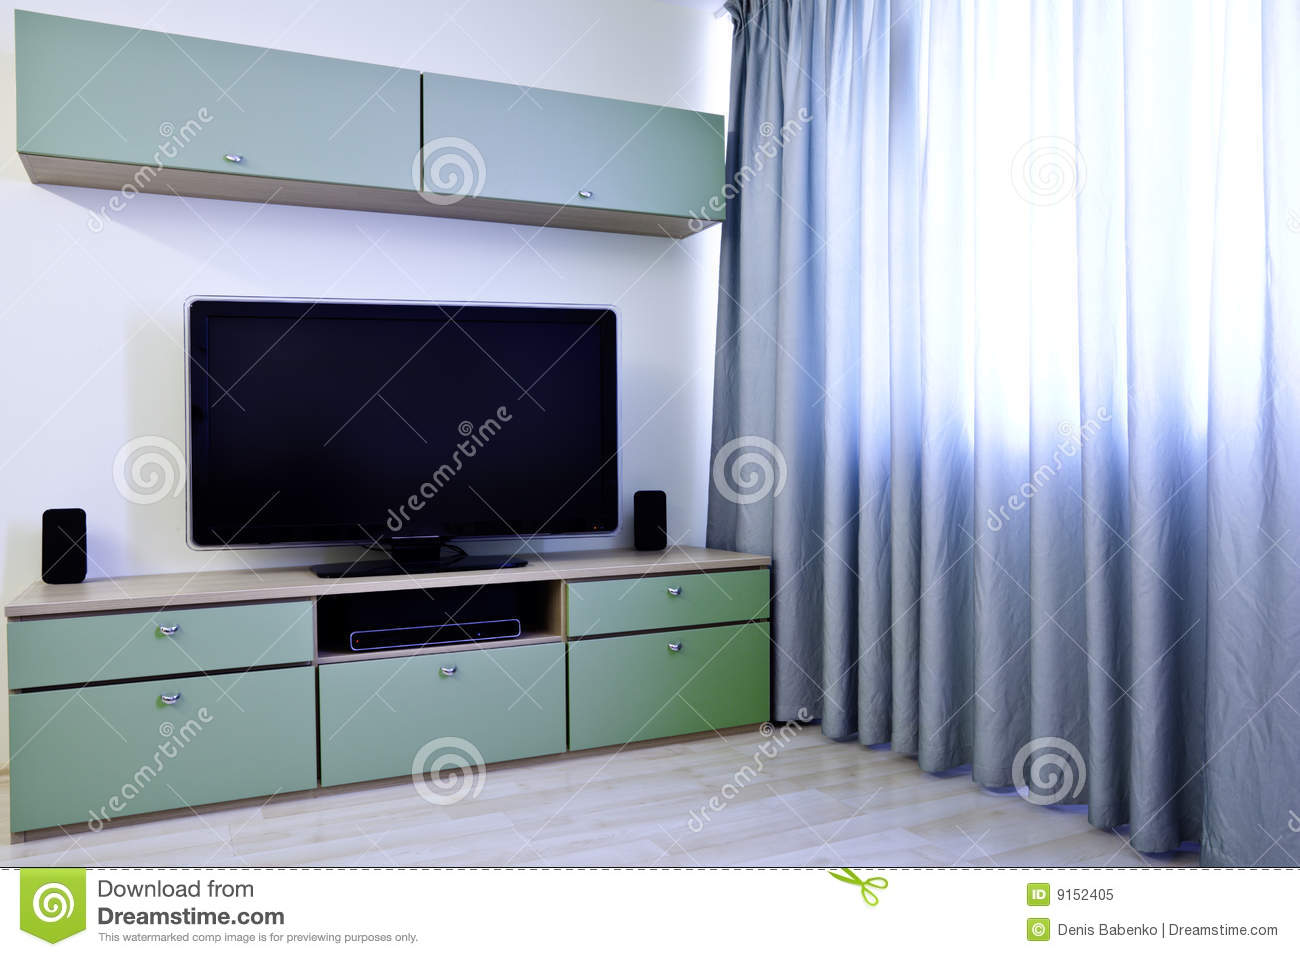 Download Corner In Modern Room With TV Stock Image - Image of inside, eception: 9152405